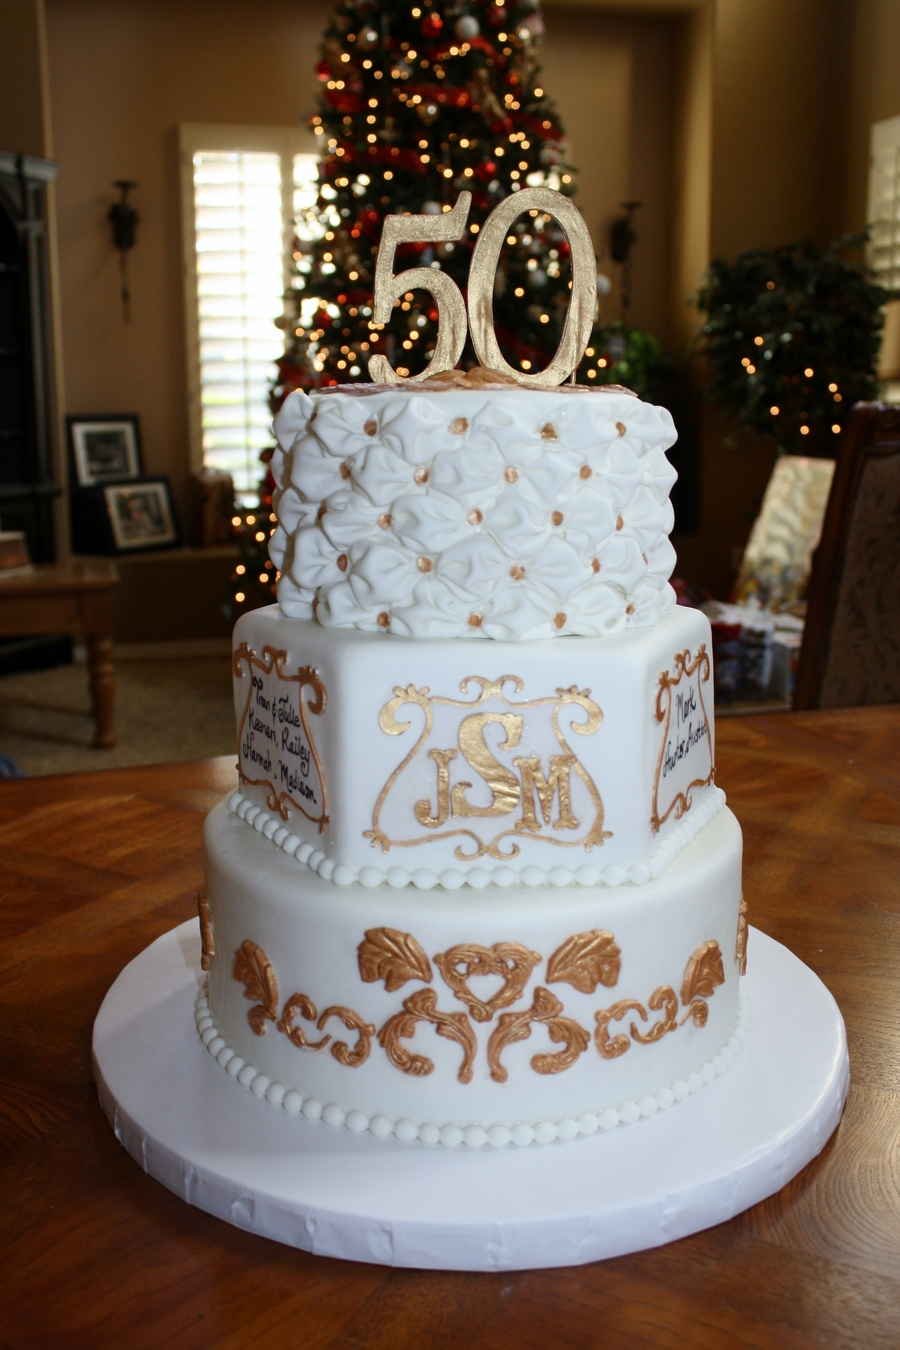 When One Gets To The 50Th Wedding Anniversary There Better Be A Big Beautiful Cake At The End Taahhh Daaahhh Lol This Cake Was Super Fun on Cake Central